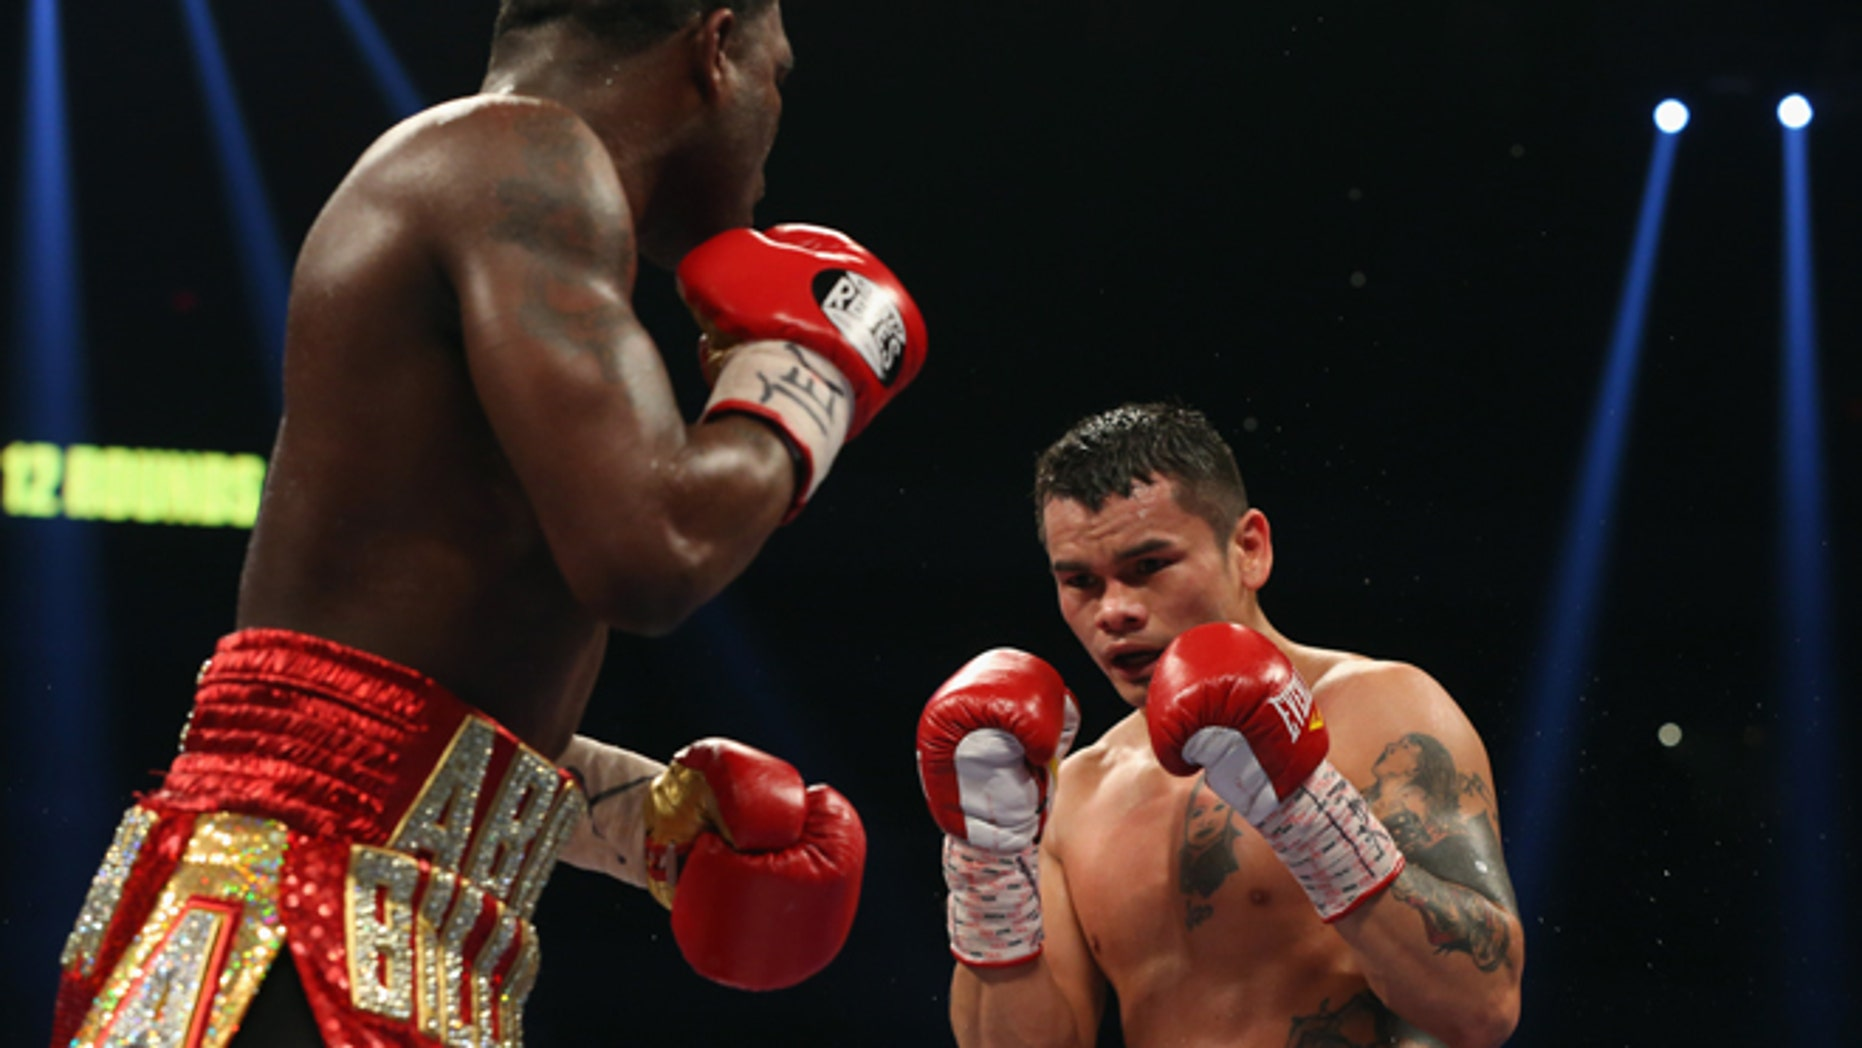 SAN ANTONIO, TX - DECEMBER 14:  (L-R) Adrien Broner and Marcos Maidana during their WBA Welterweight Title bout at Alamodome on December14, 2013 in San Antonio, Texas..  (Photo by Ronald Martinez/Getty Images)